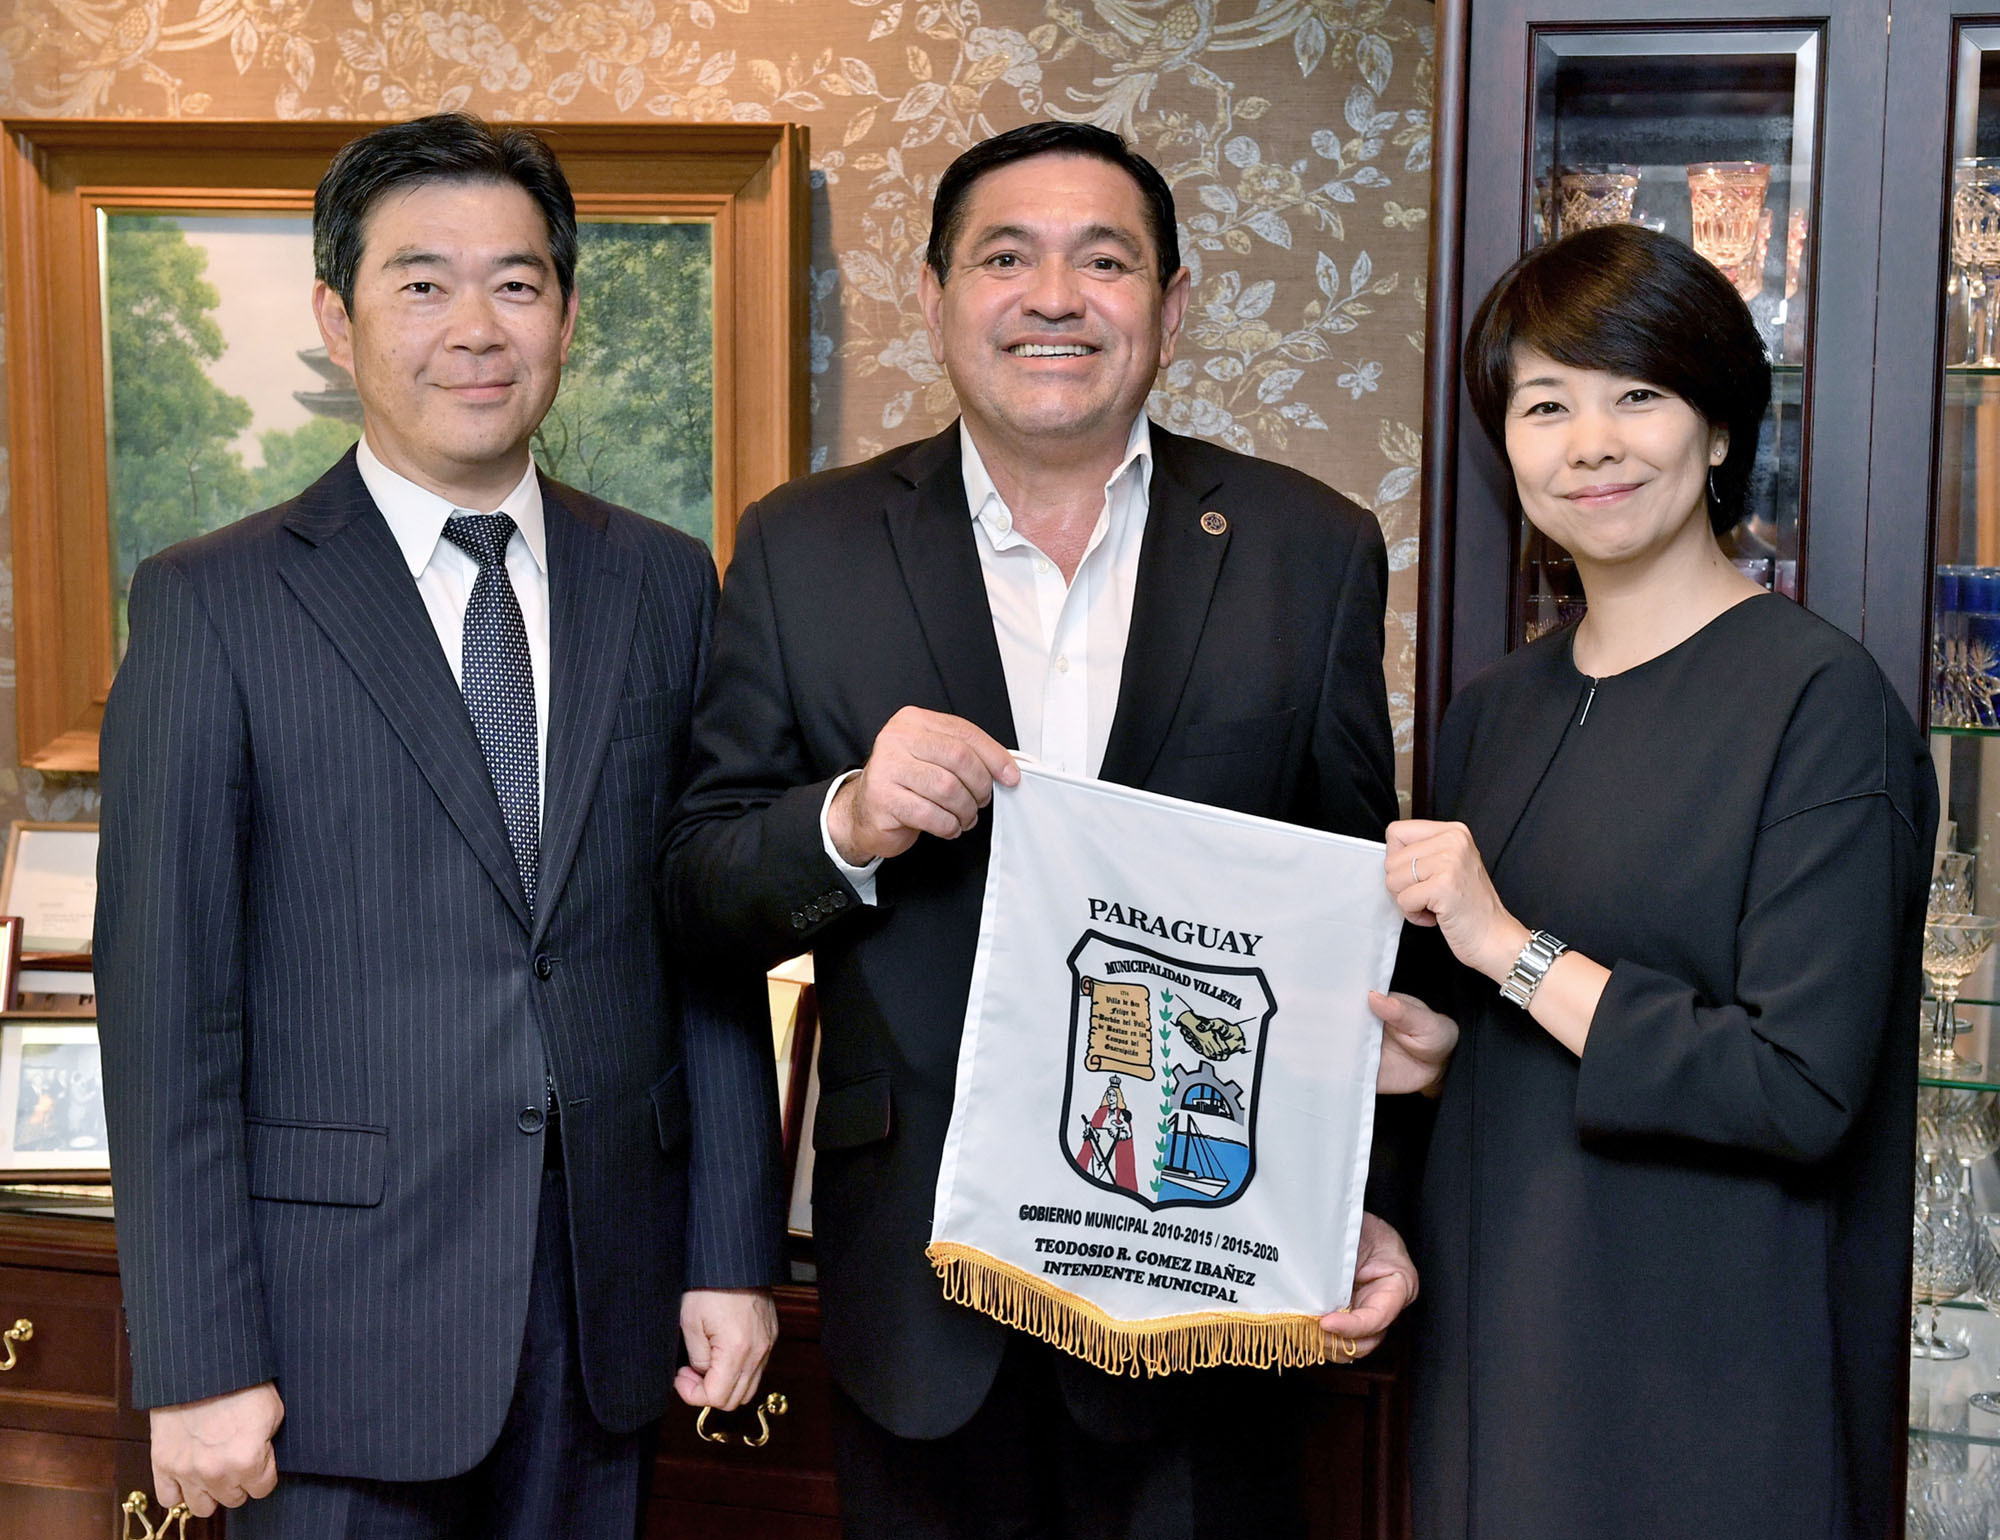 Teodosio Romilio Gomez Ibanez (center), mayor of the city of  Villeta, Paraguay,  visits The Japan Times' Tokyo office on Oct. 10, and hands a pennant bearing the city's coat of arms to Chairperson and Publisher Minako Kambara Suematsu. On the left is Japan Times President Takeharu Tsutsumi. |   YOSHIAKI MIURA